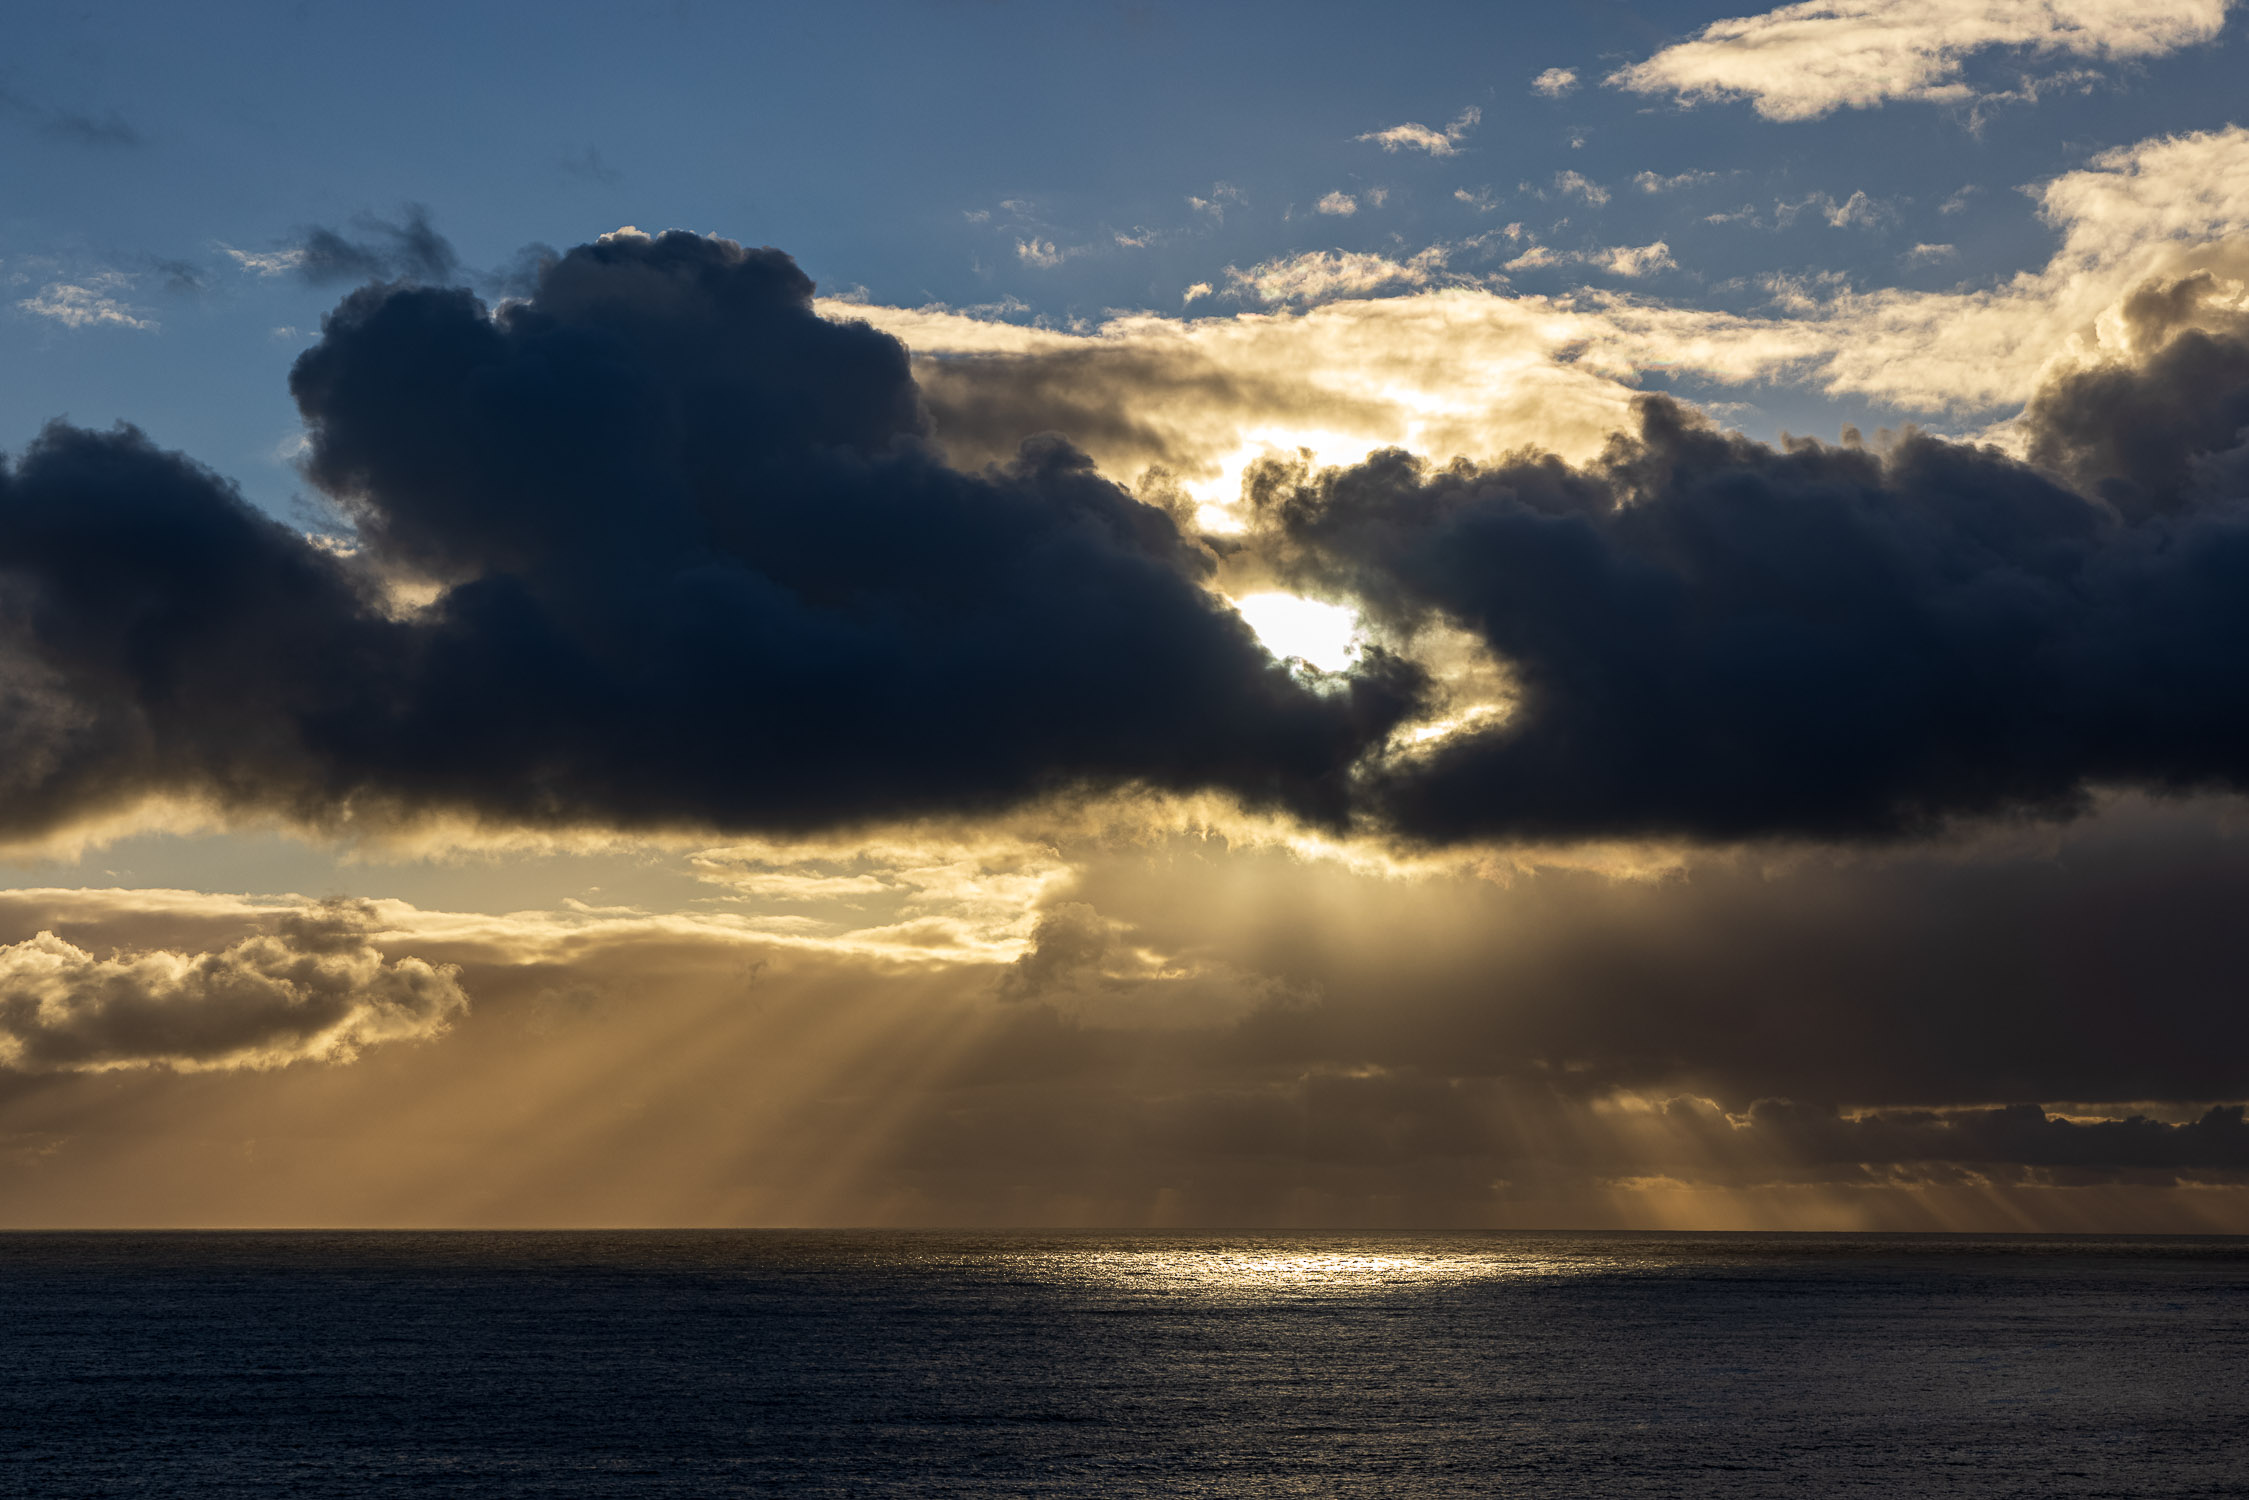 Sunburst off the Purbeck Coast